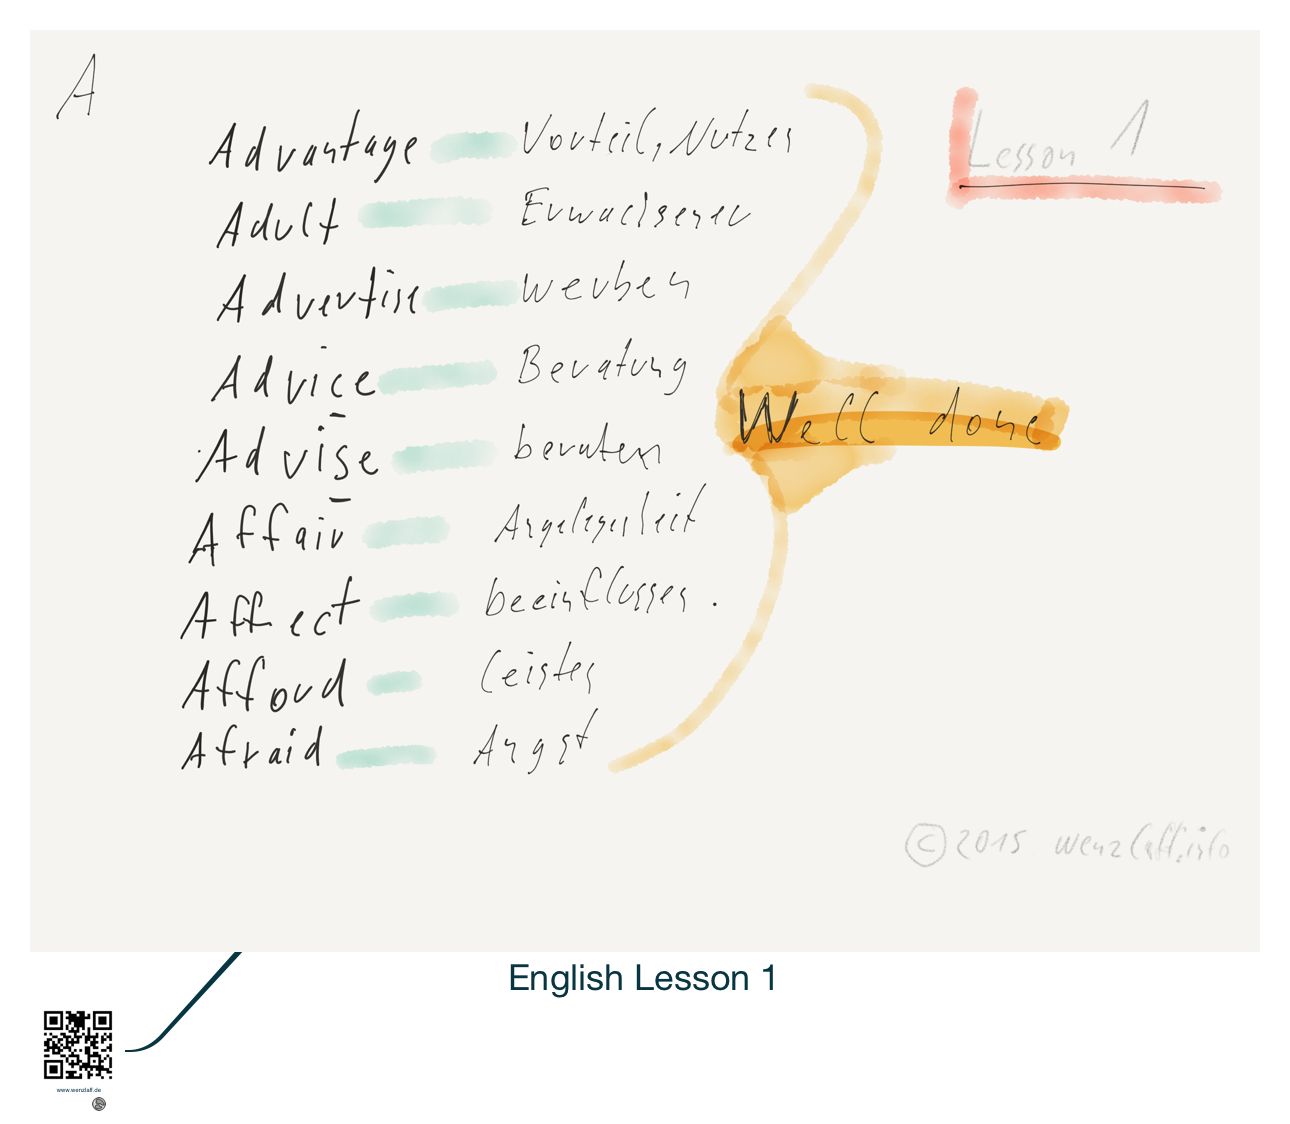 engl-lesson-1